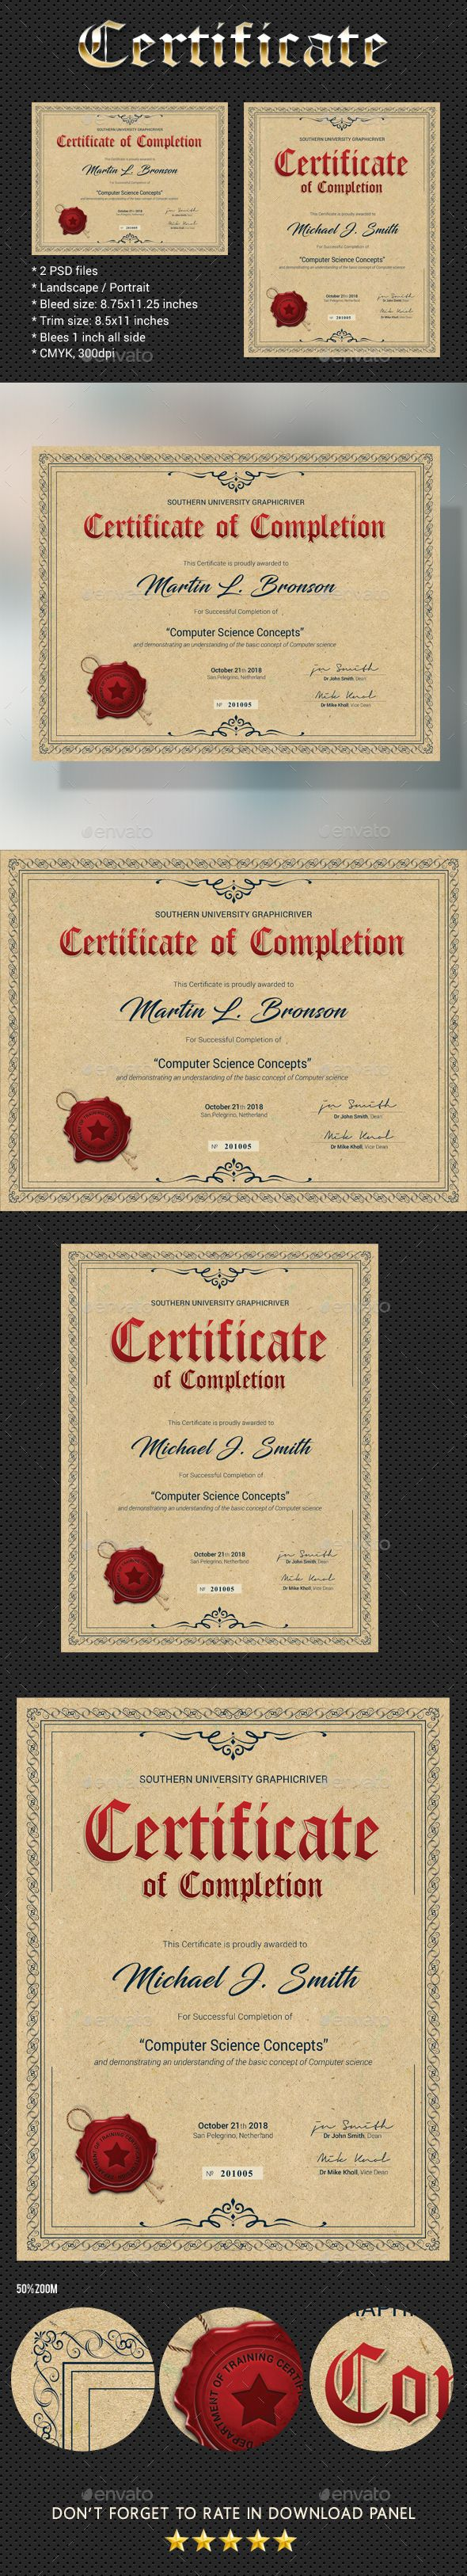 Certificate V4 #professional certificate #vector file  • Download here → https://graphicriver.net/item/certificate-v4/20500814?ref=pxcr